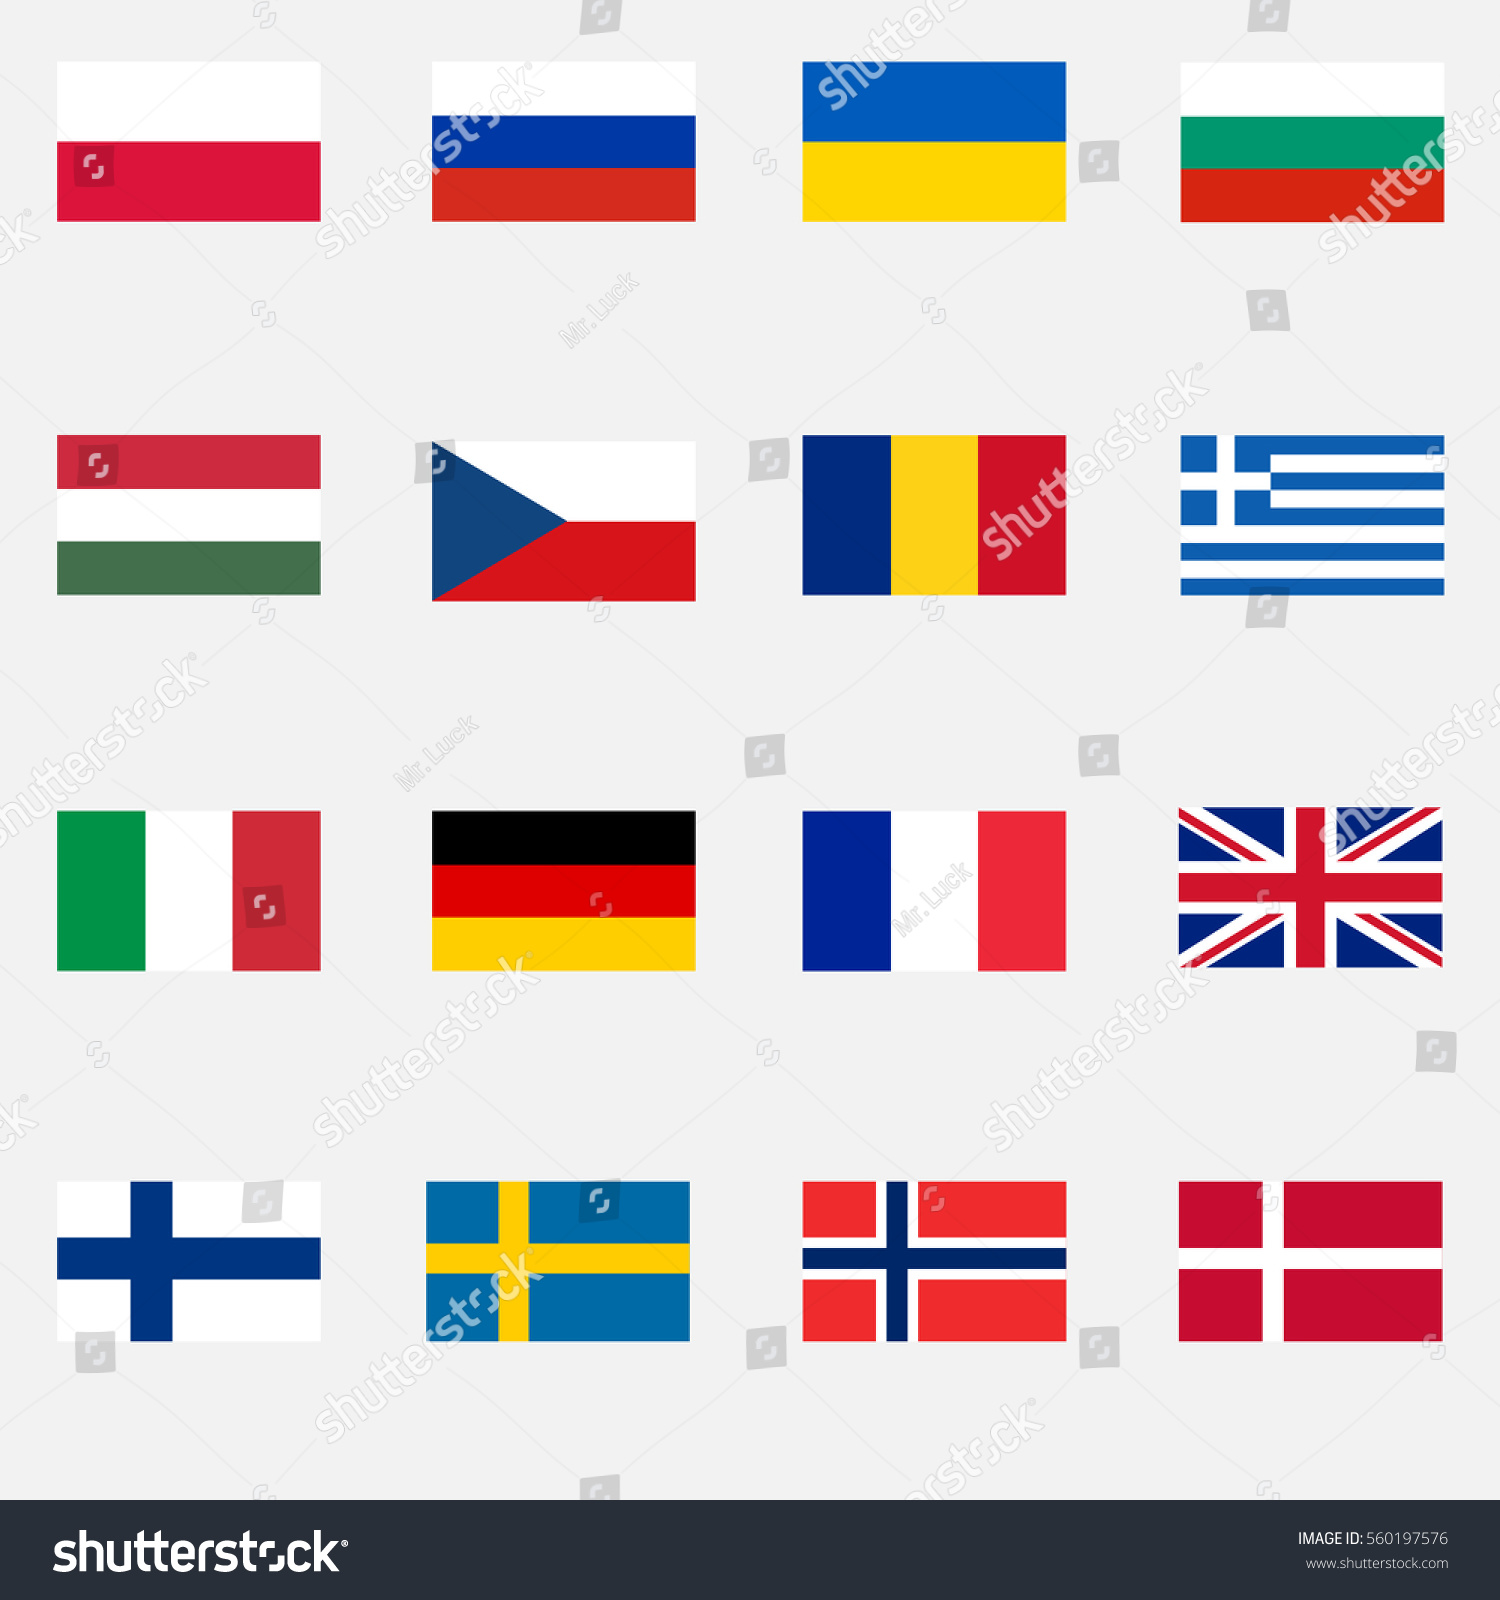 Flags Countries Europe Poland Russia Czech Stock Vector